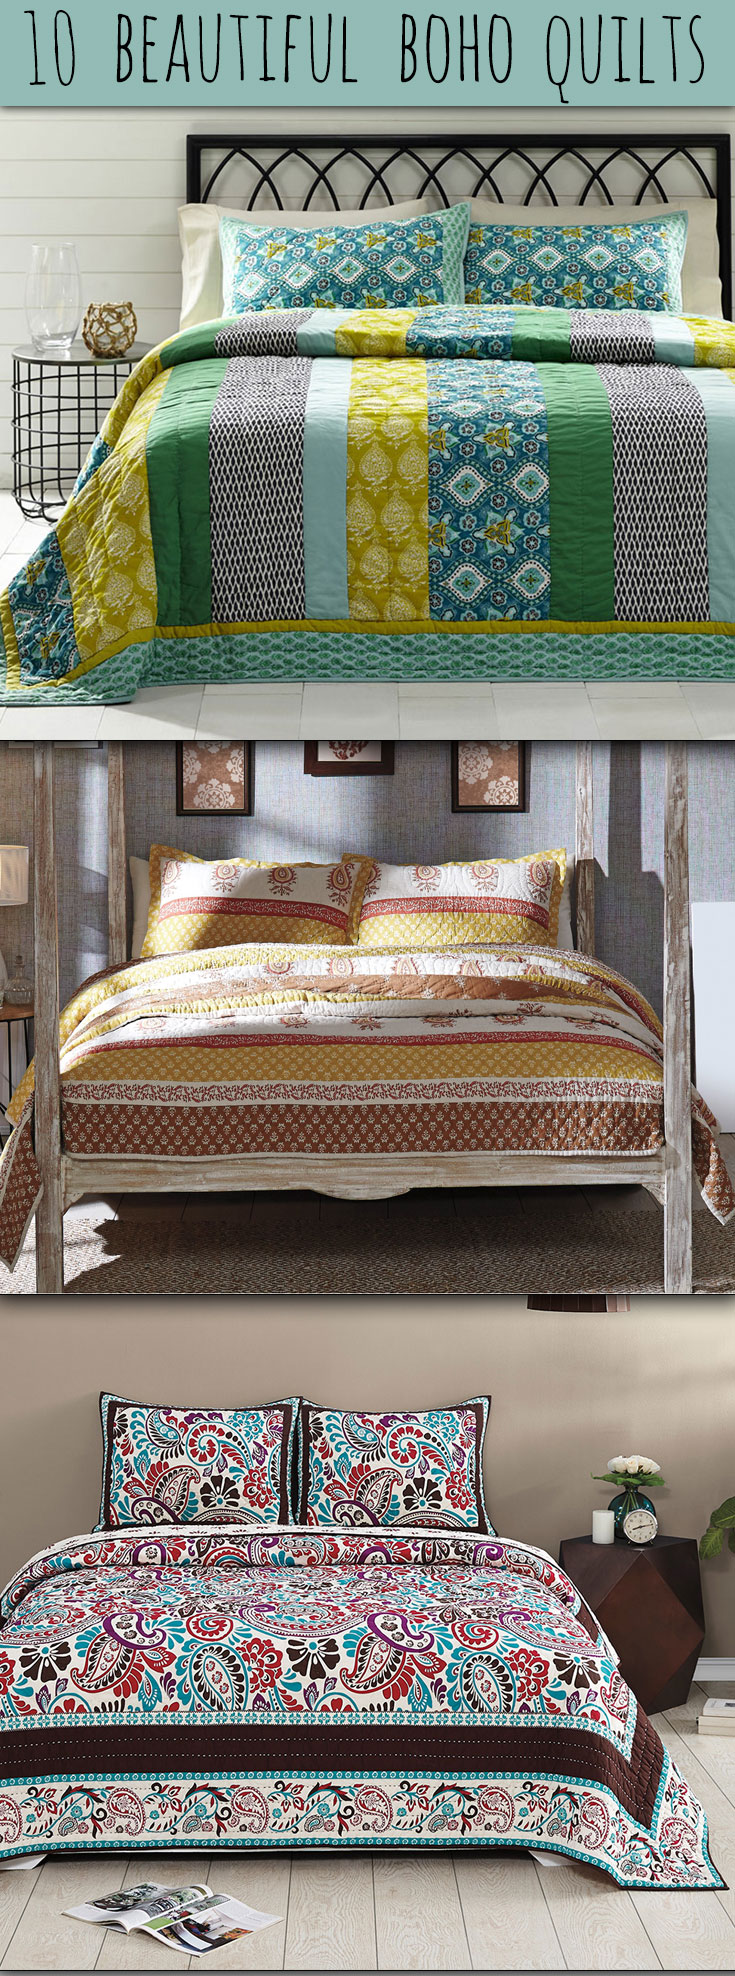 Ten Beautiful Boho Bedding Quilts at The Weed Patch